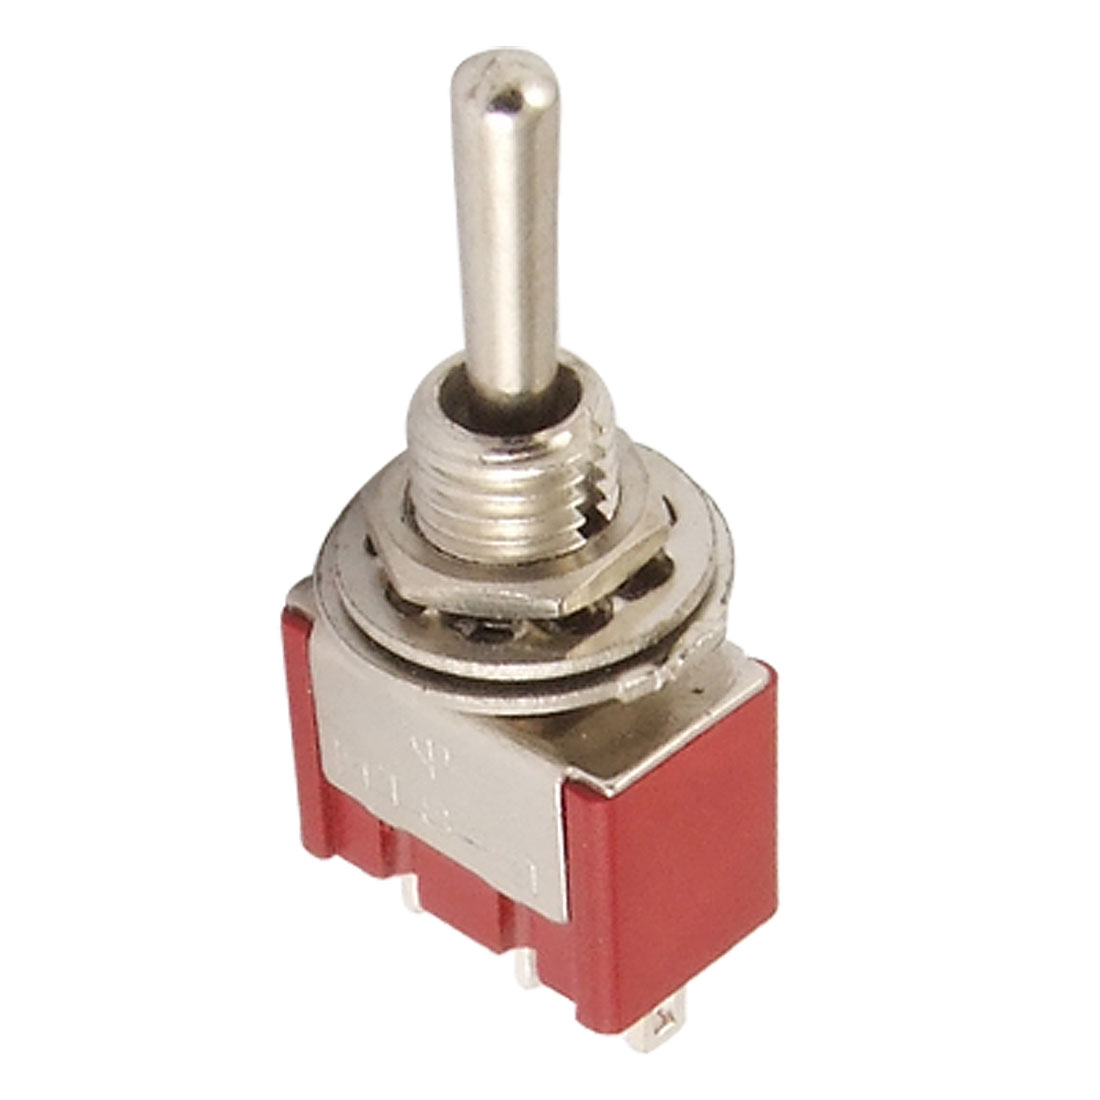 AC 250V/3A 125V/6A 3 Position On/Off/On SPDT Toggle Switch